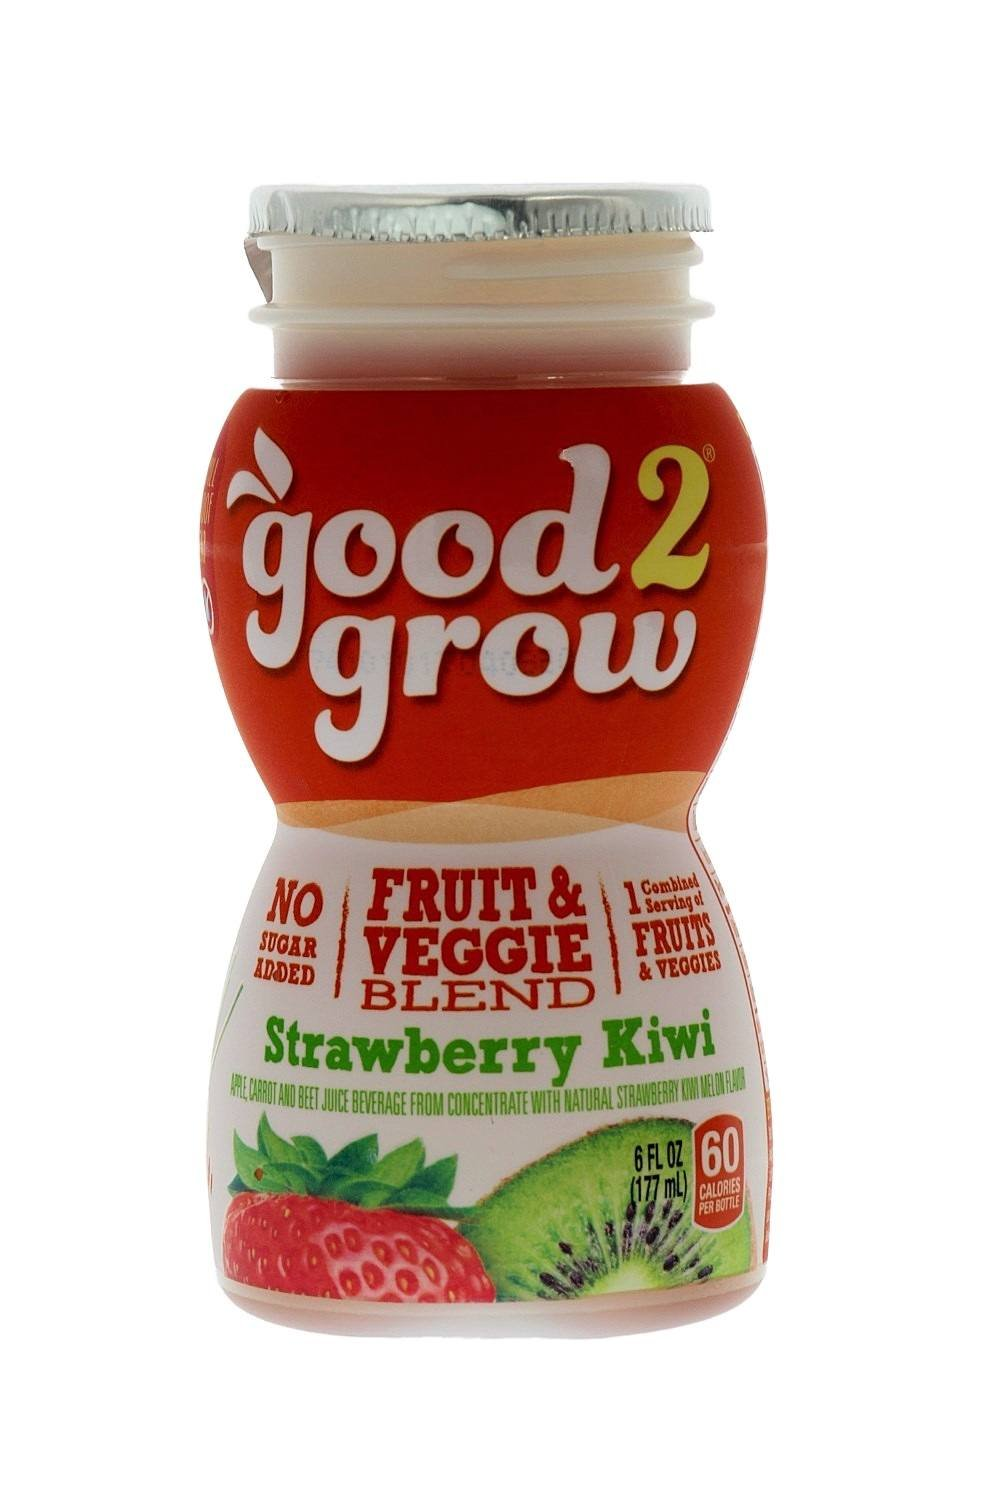 good2grow Fruit & Veggie Blend – Strawberry Kiwi 6oz Refill Drink Bottles Pack, 24 Count - No Sugar Added, An Excellent Source of Vitamin C - Use with Collectible Spill-Proof Topper Characters by good2grow (Image #4)